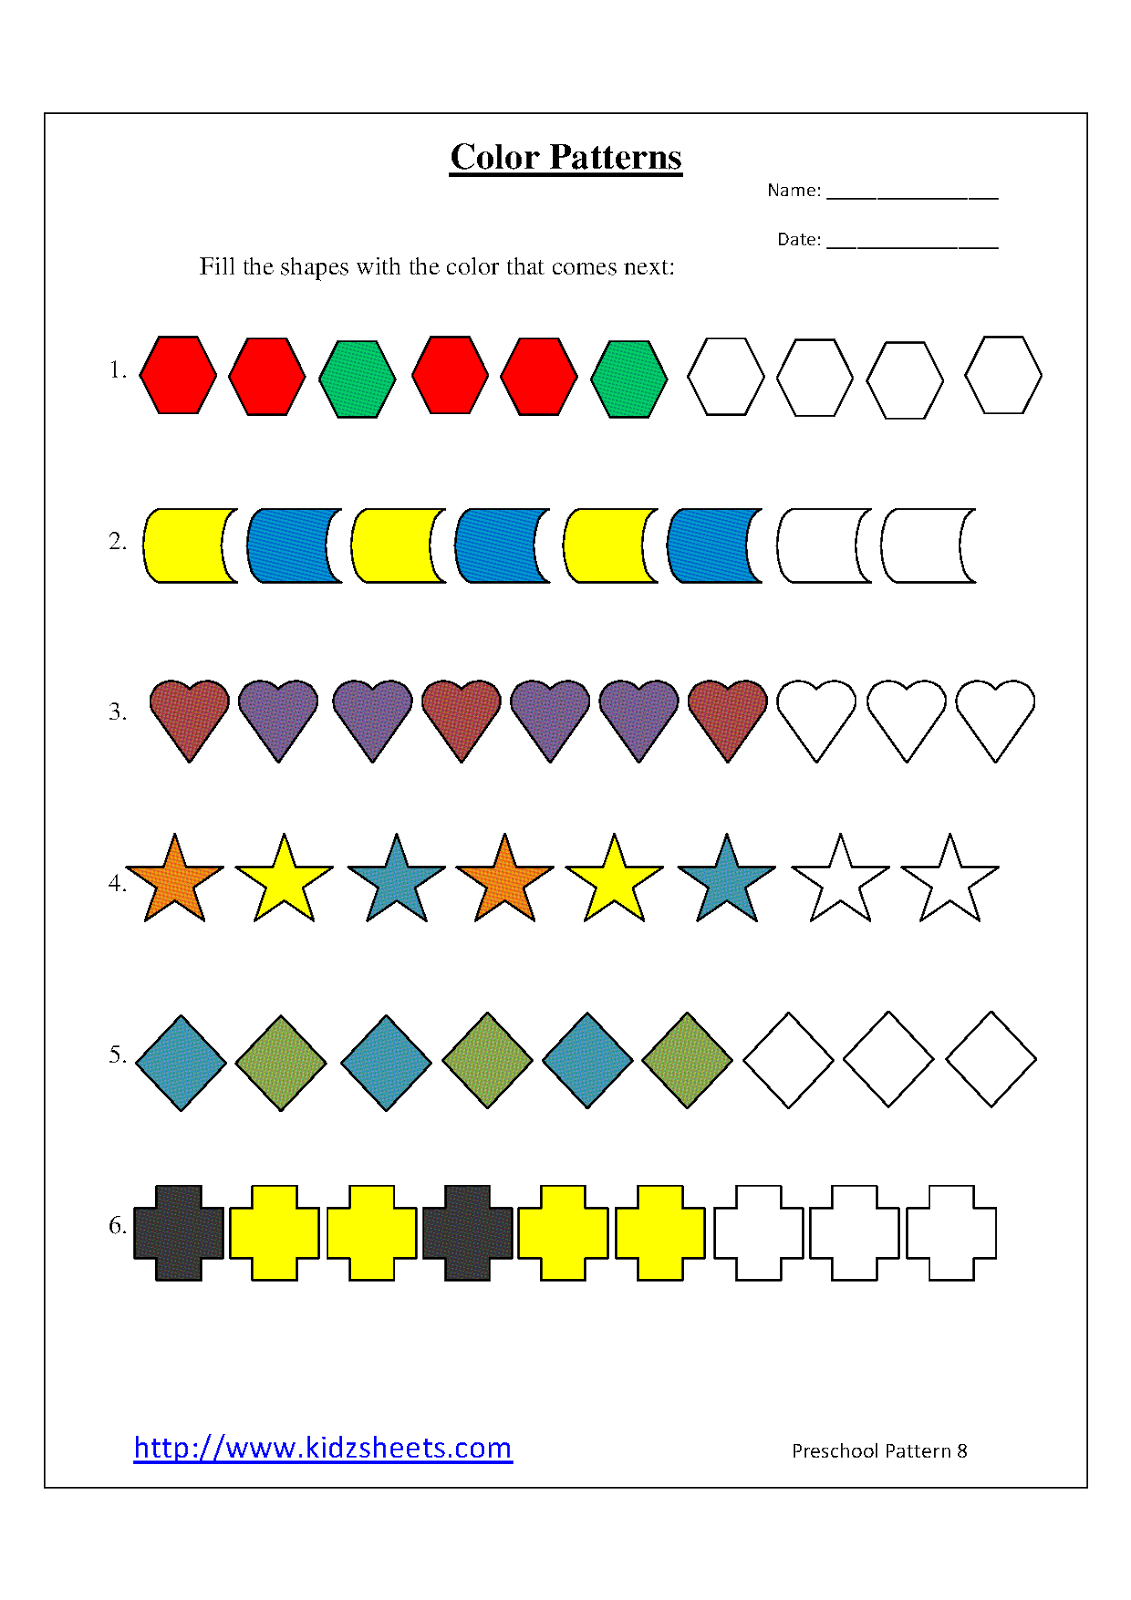 Kidz Worksheets Preschool Color Patterns Worksheet8 – Pattern Maths Worksheets